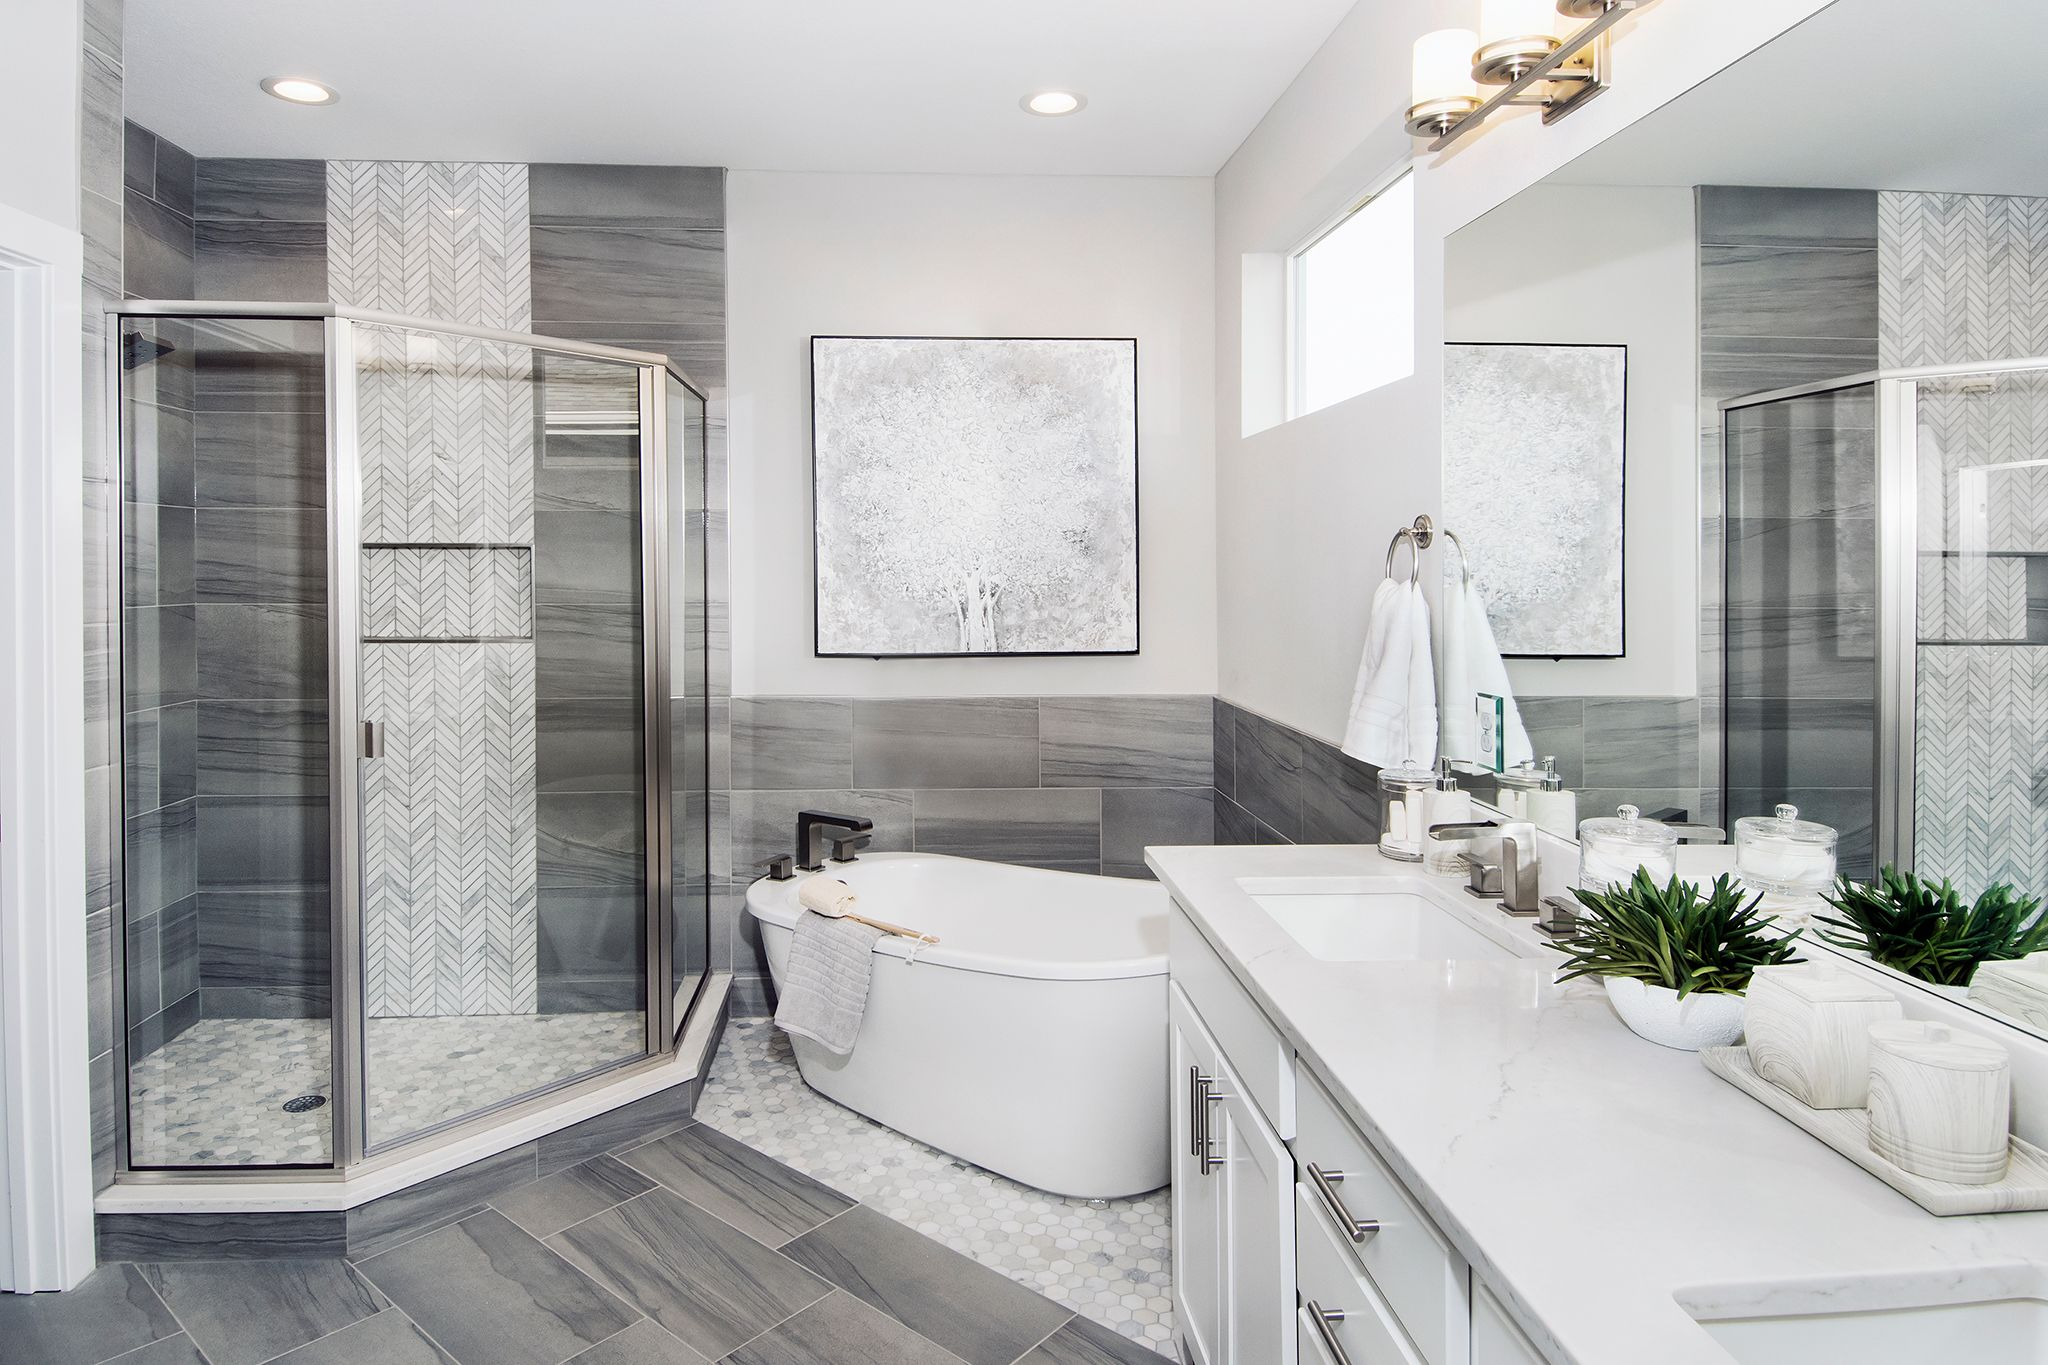 Bathroom featured in the Fleming By Dream Finders Homes in Greeley, CO